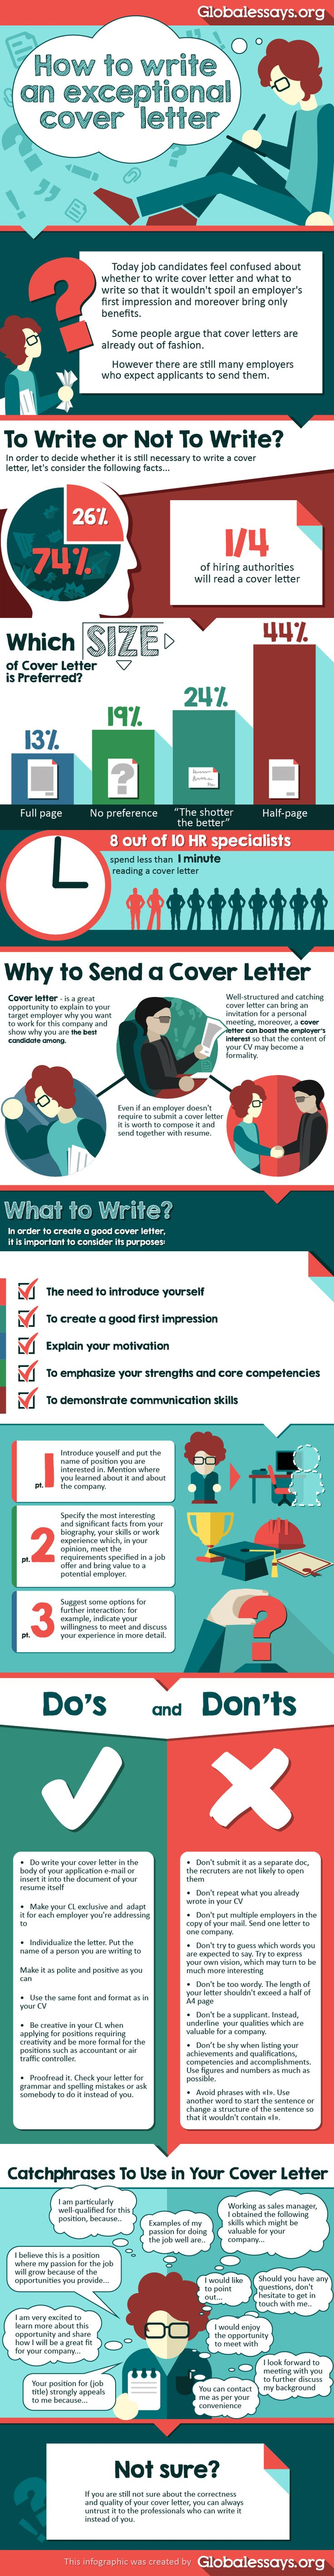 how to write a job application letter with cv